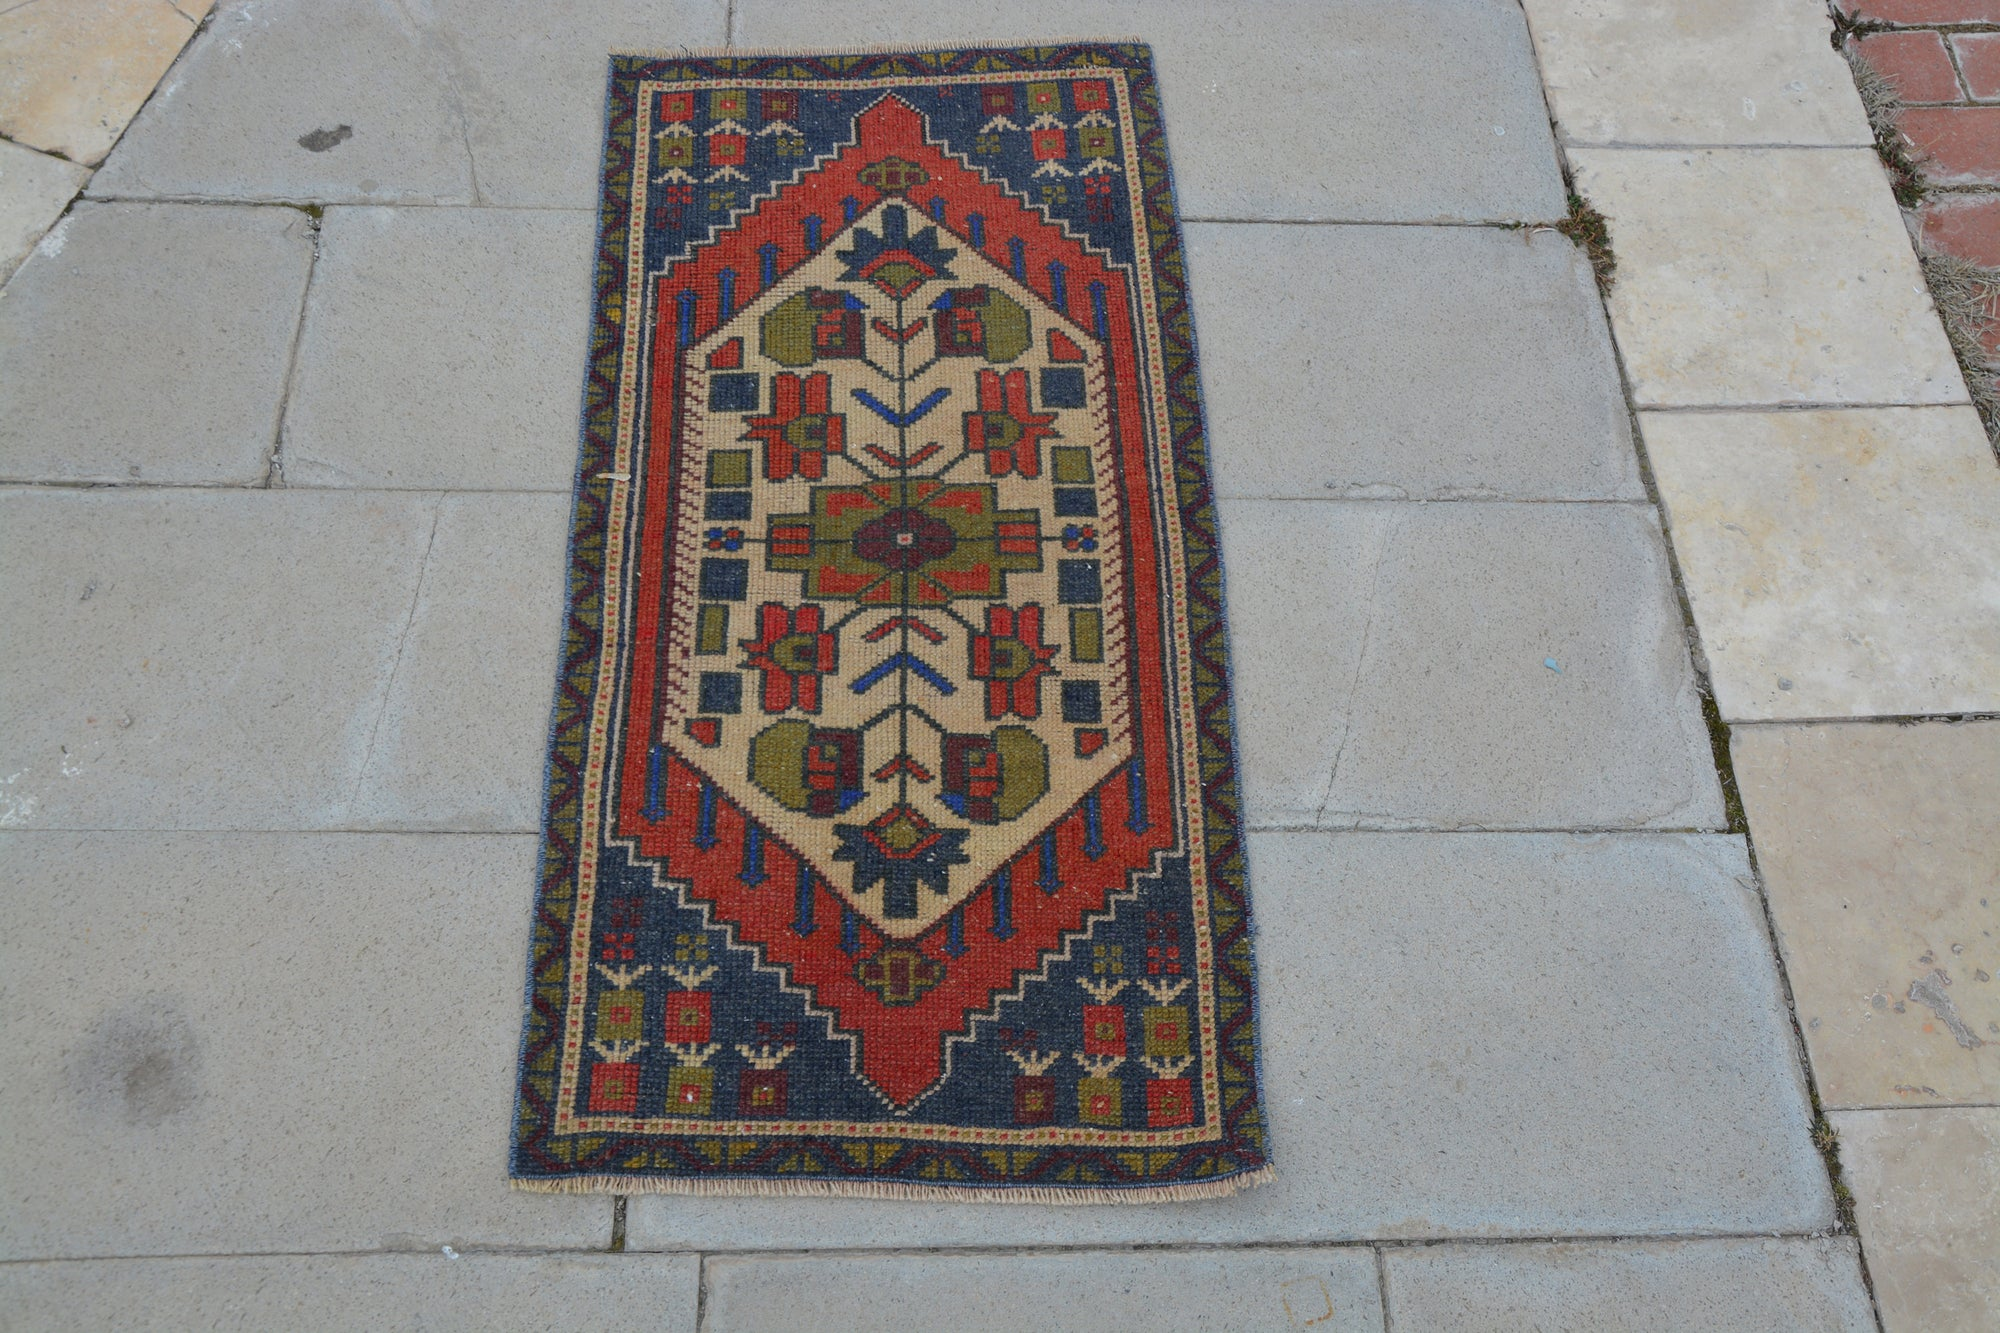 Inexpensive Turkish Rugs, Turkish Woven Rugs, Bohemian Area Rugs, The Rug Store, Turkish Rug,               1.7 x 3.5  Feet AG1081